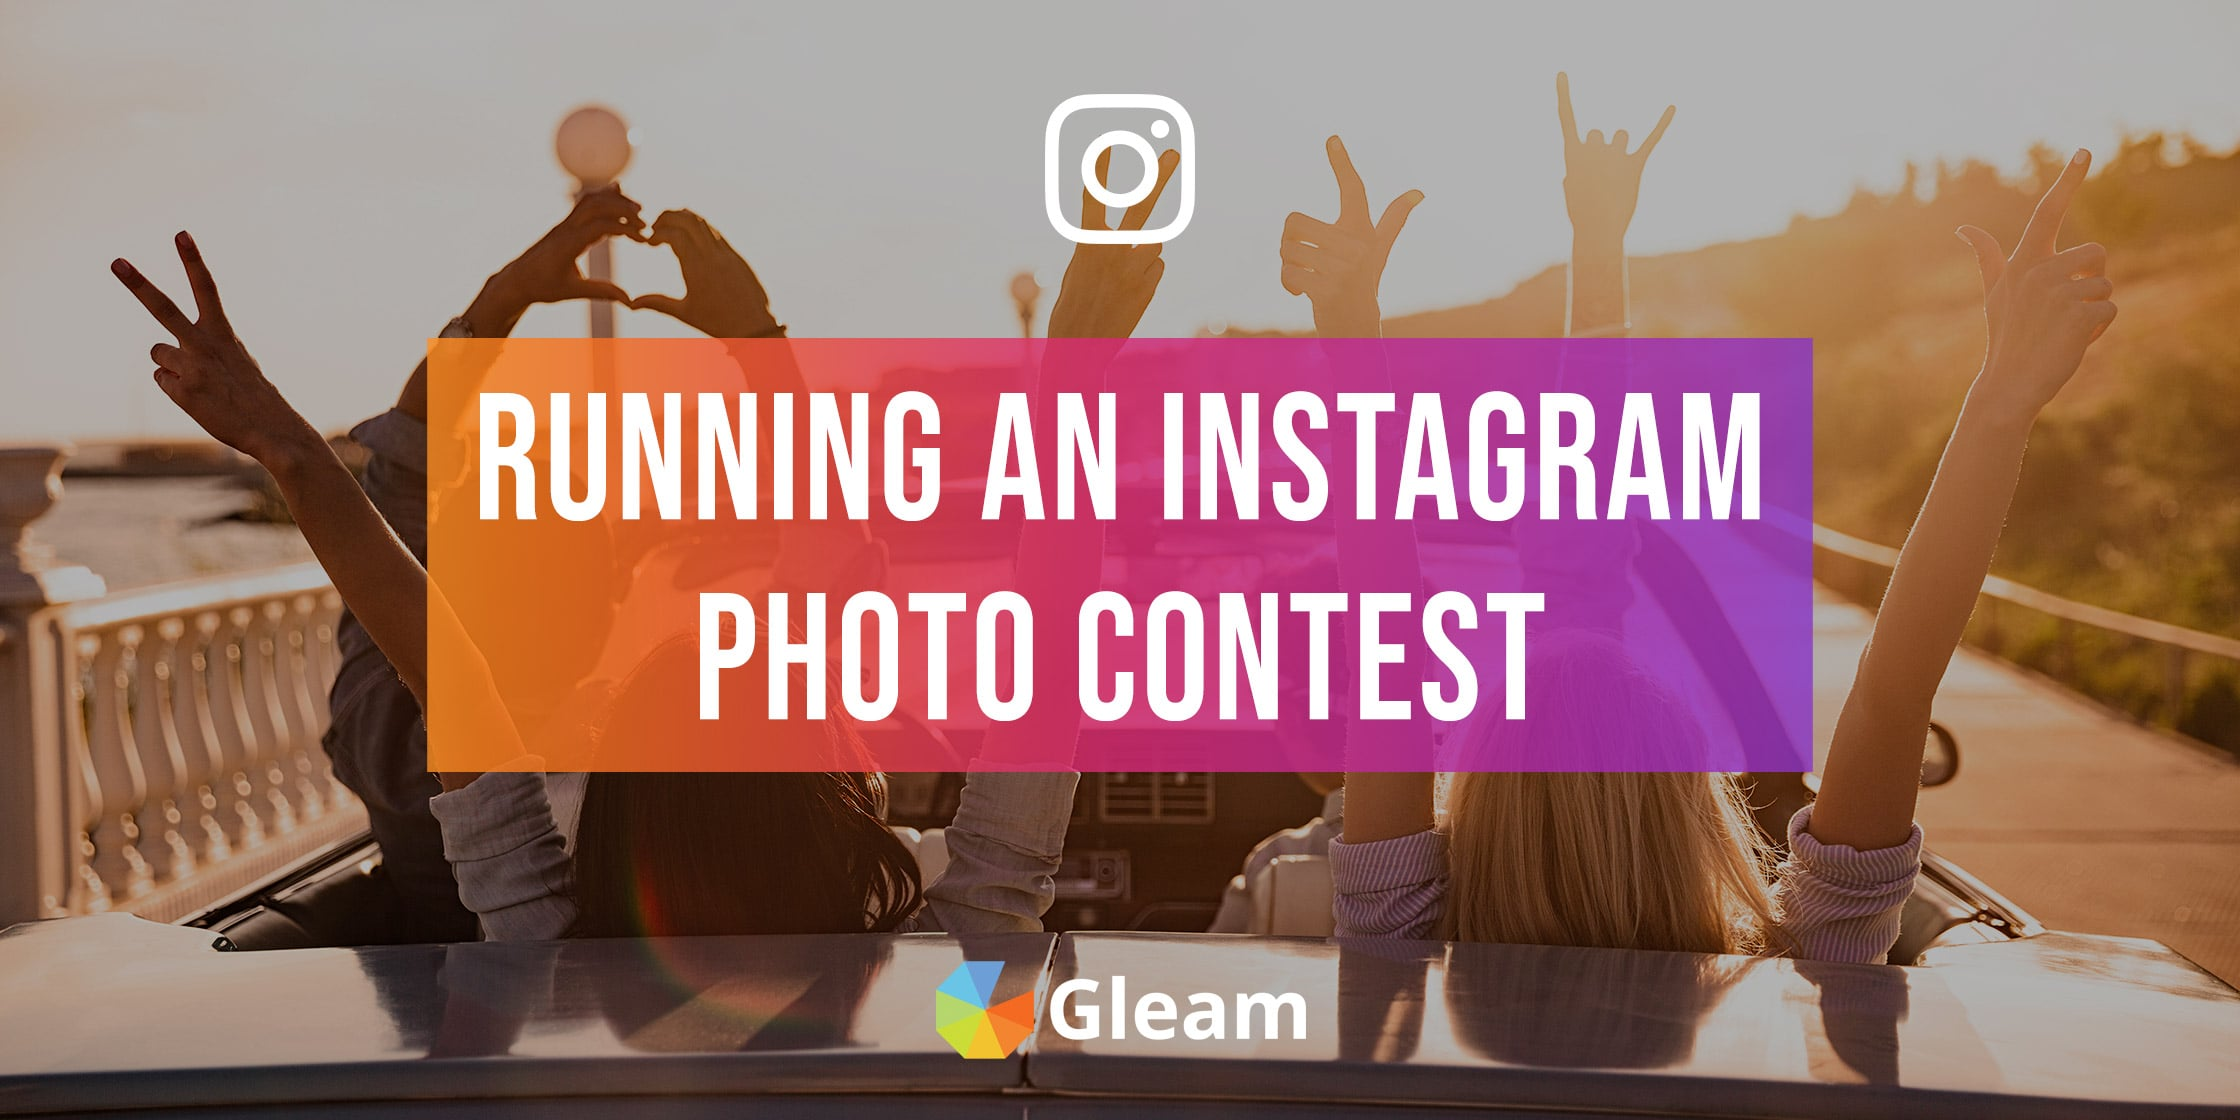 How To Run An Instagram Photo Contest